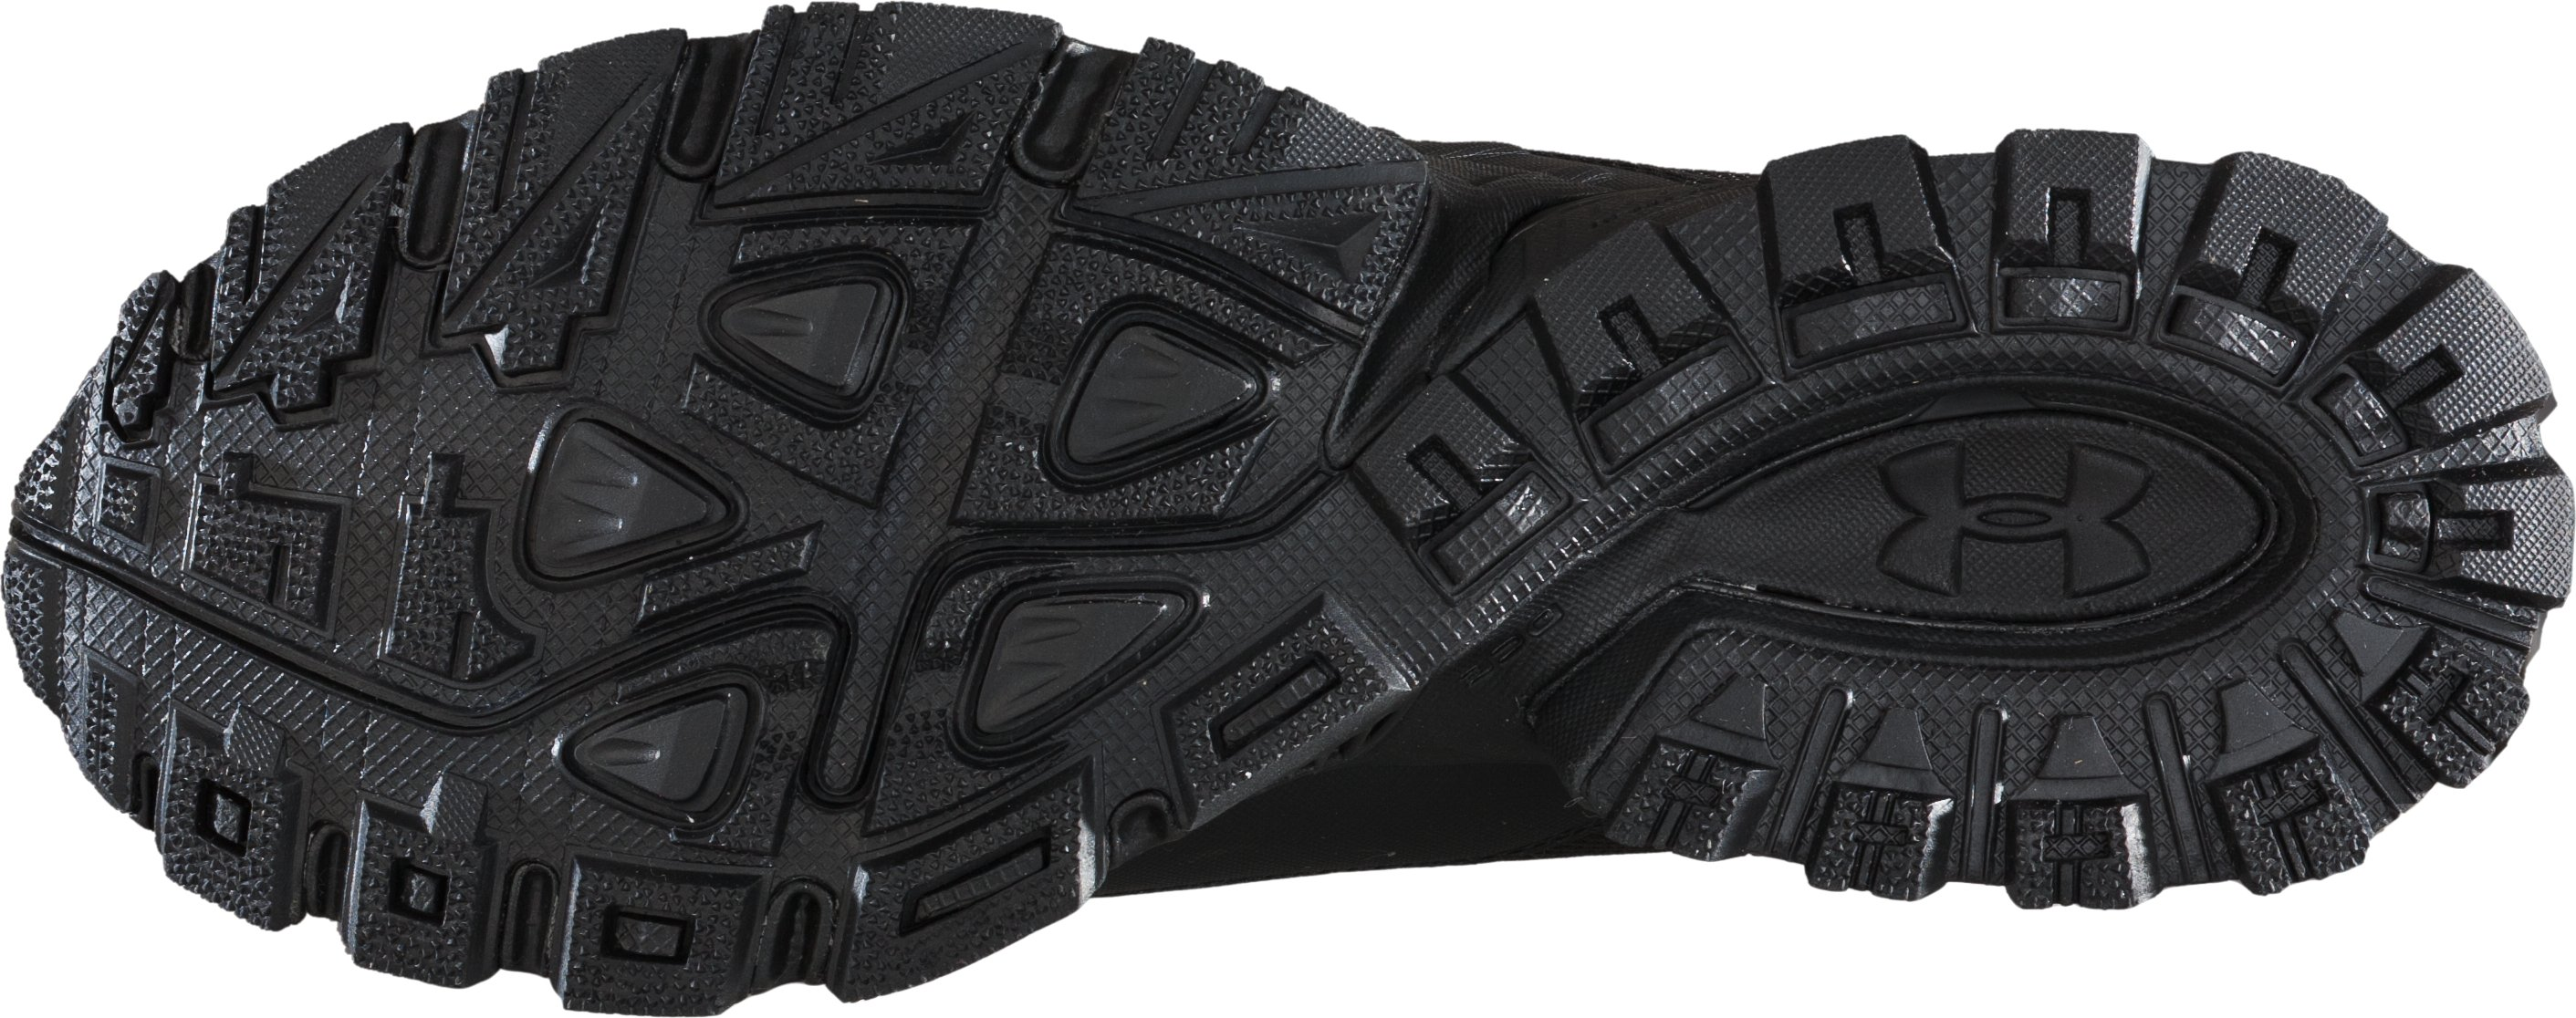 "Men's UA Valsetz 7"" Tactical Boots, Black"